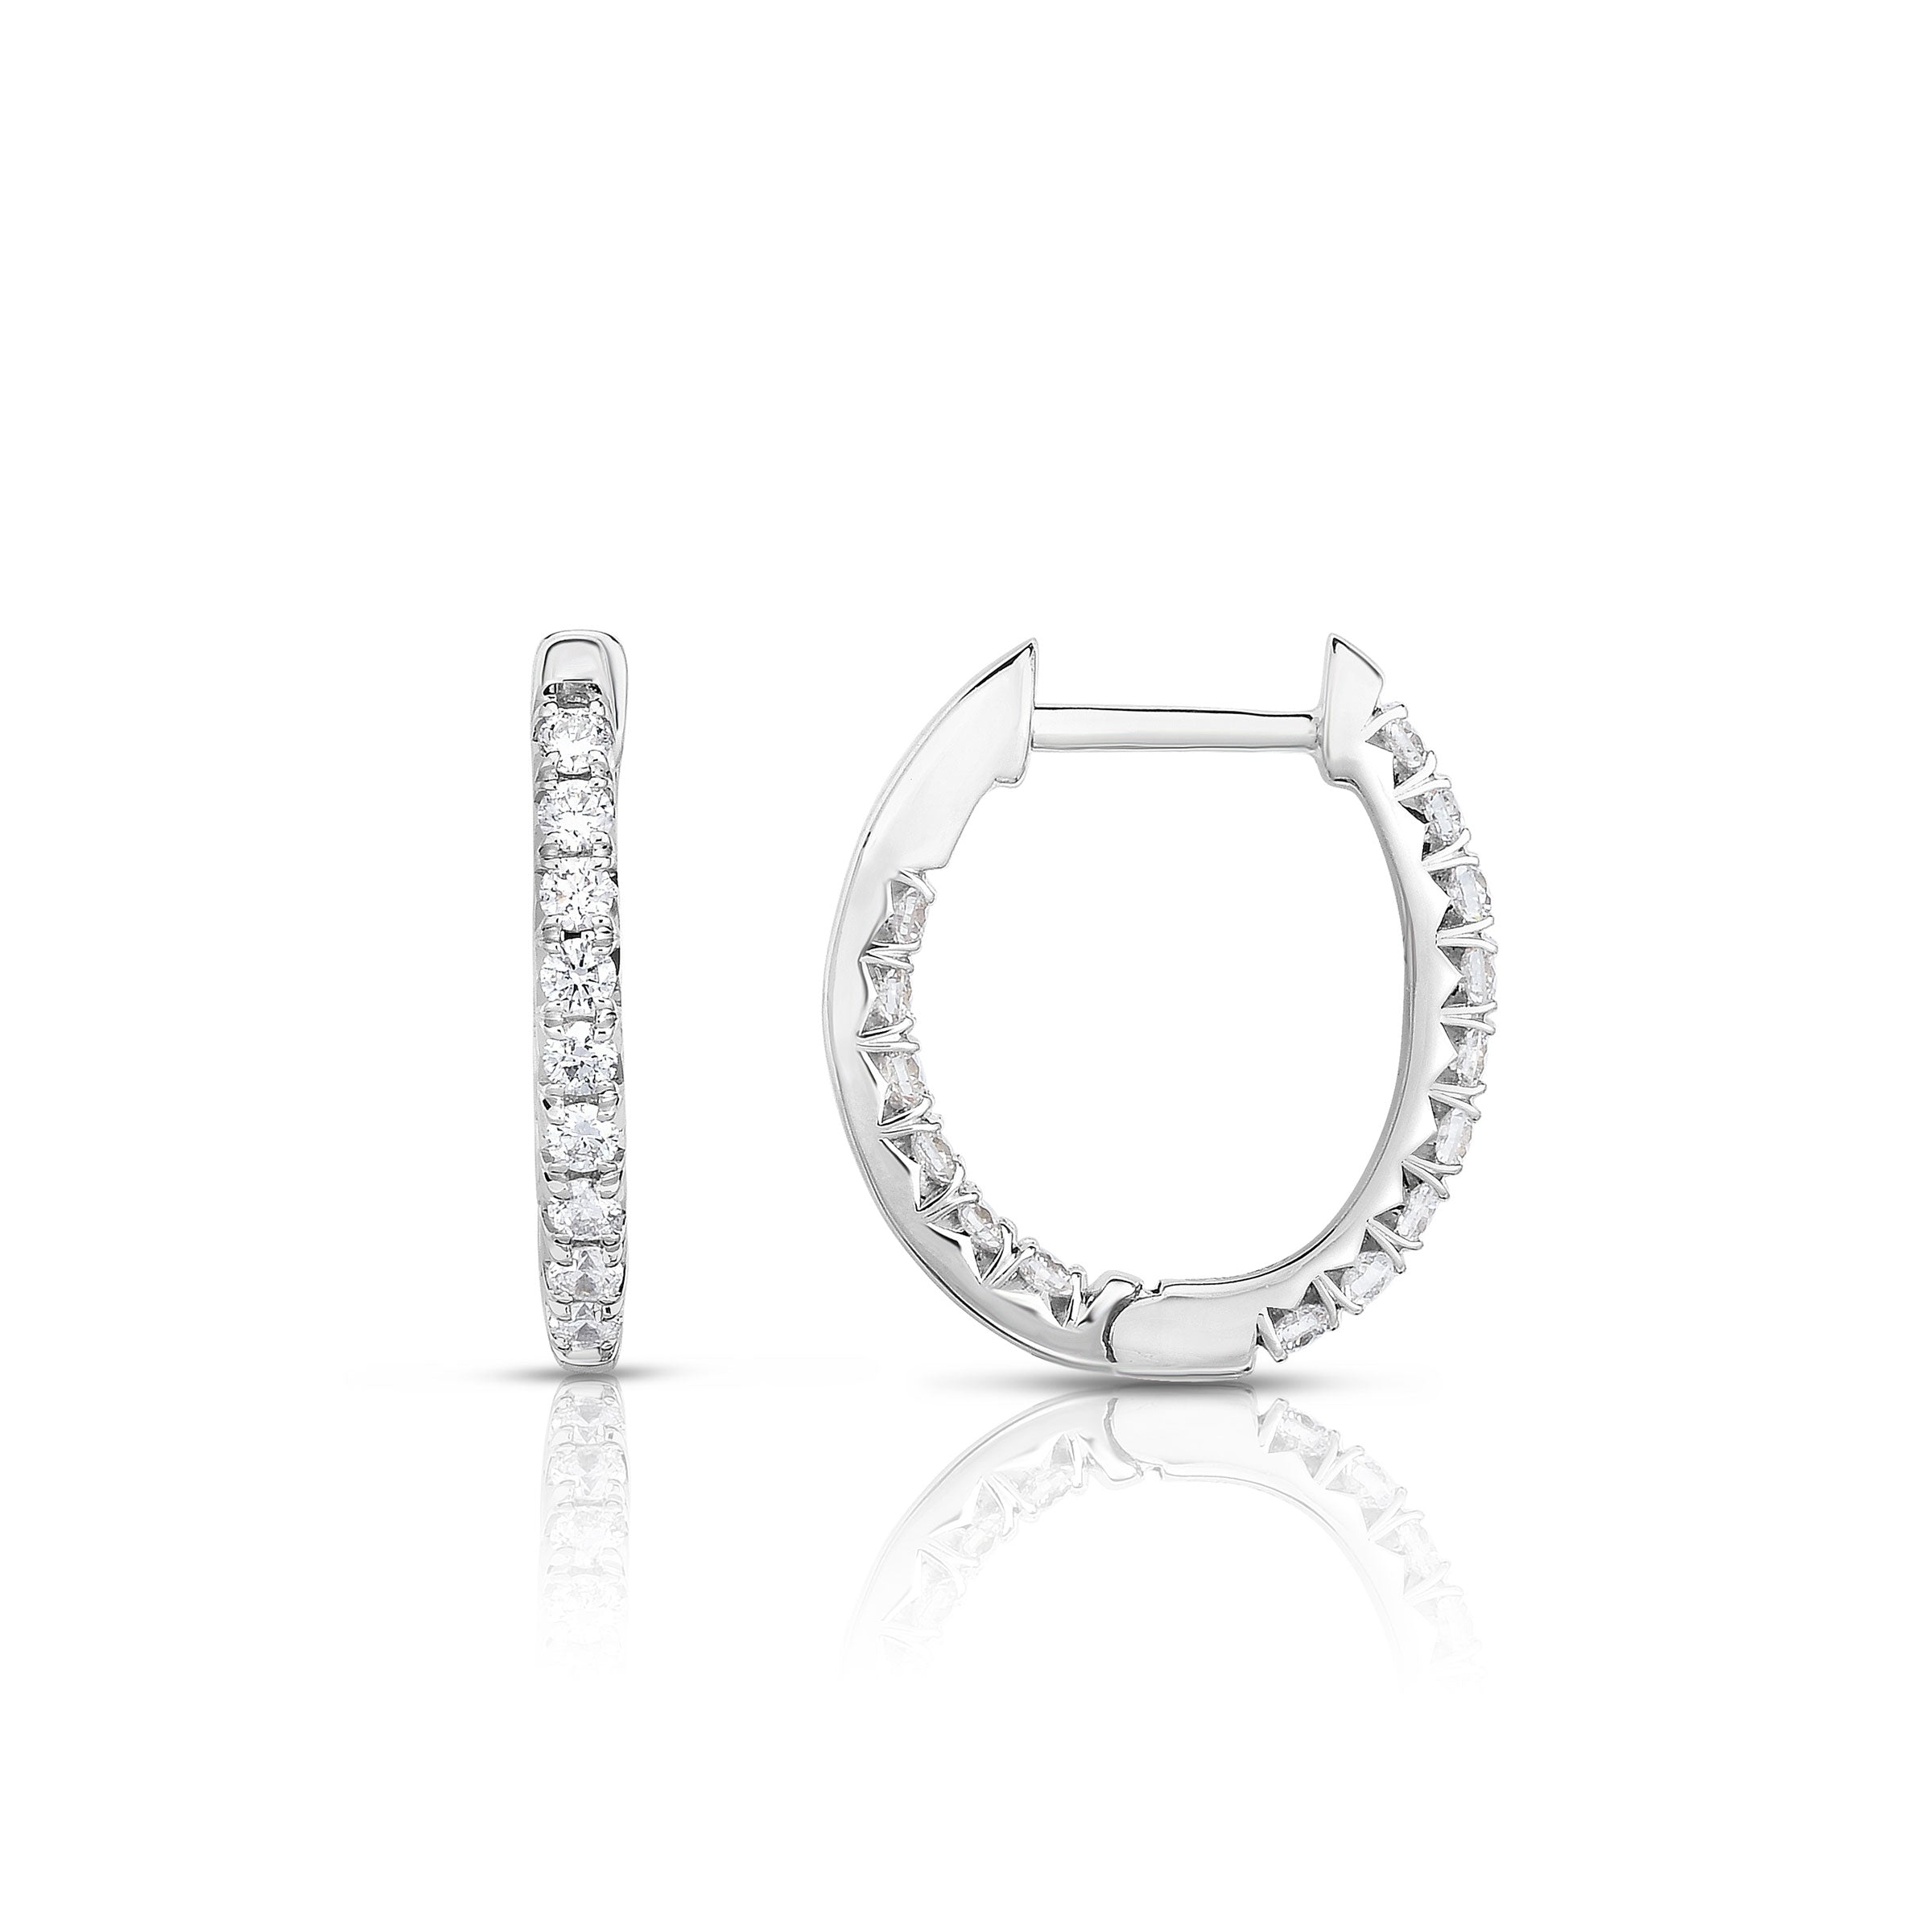 Oval Shape Inside Out Diamond Hoops, 1 Carat, 14K White Gold